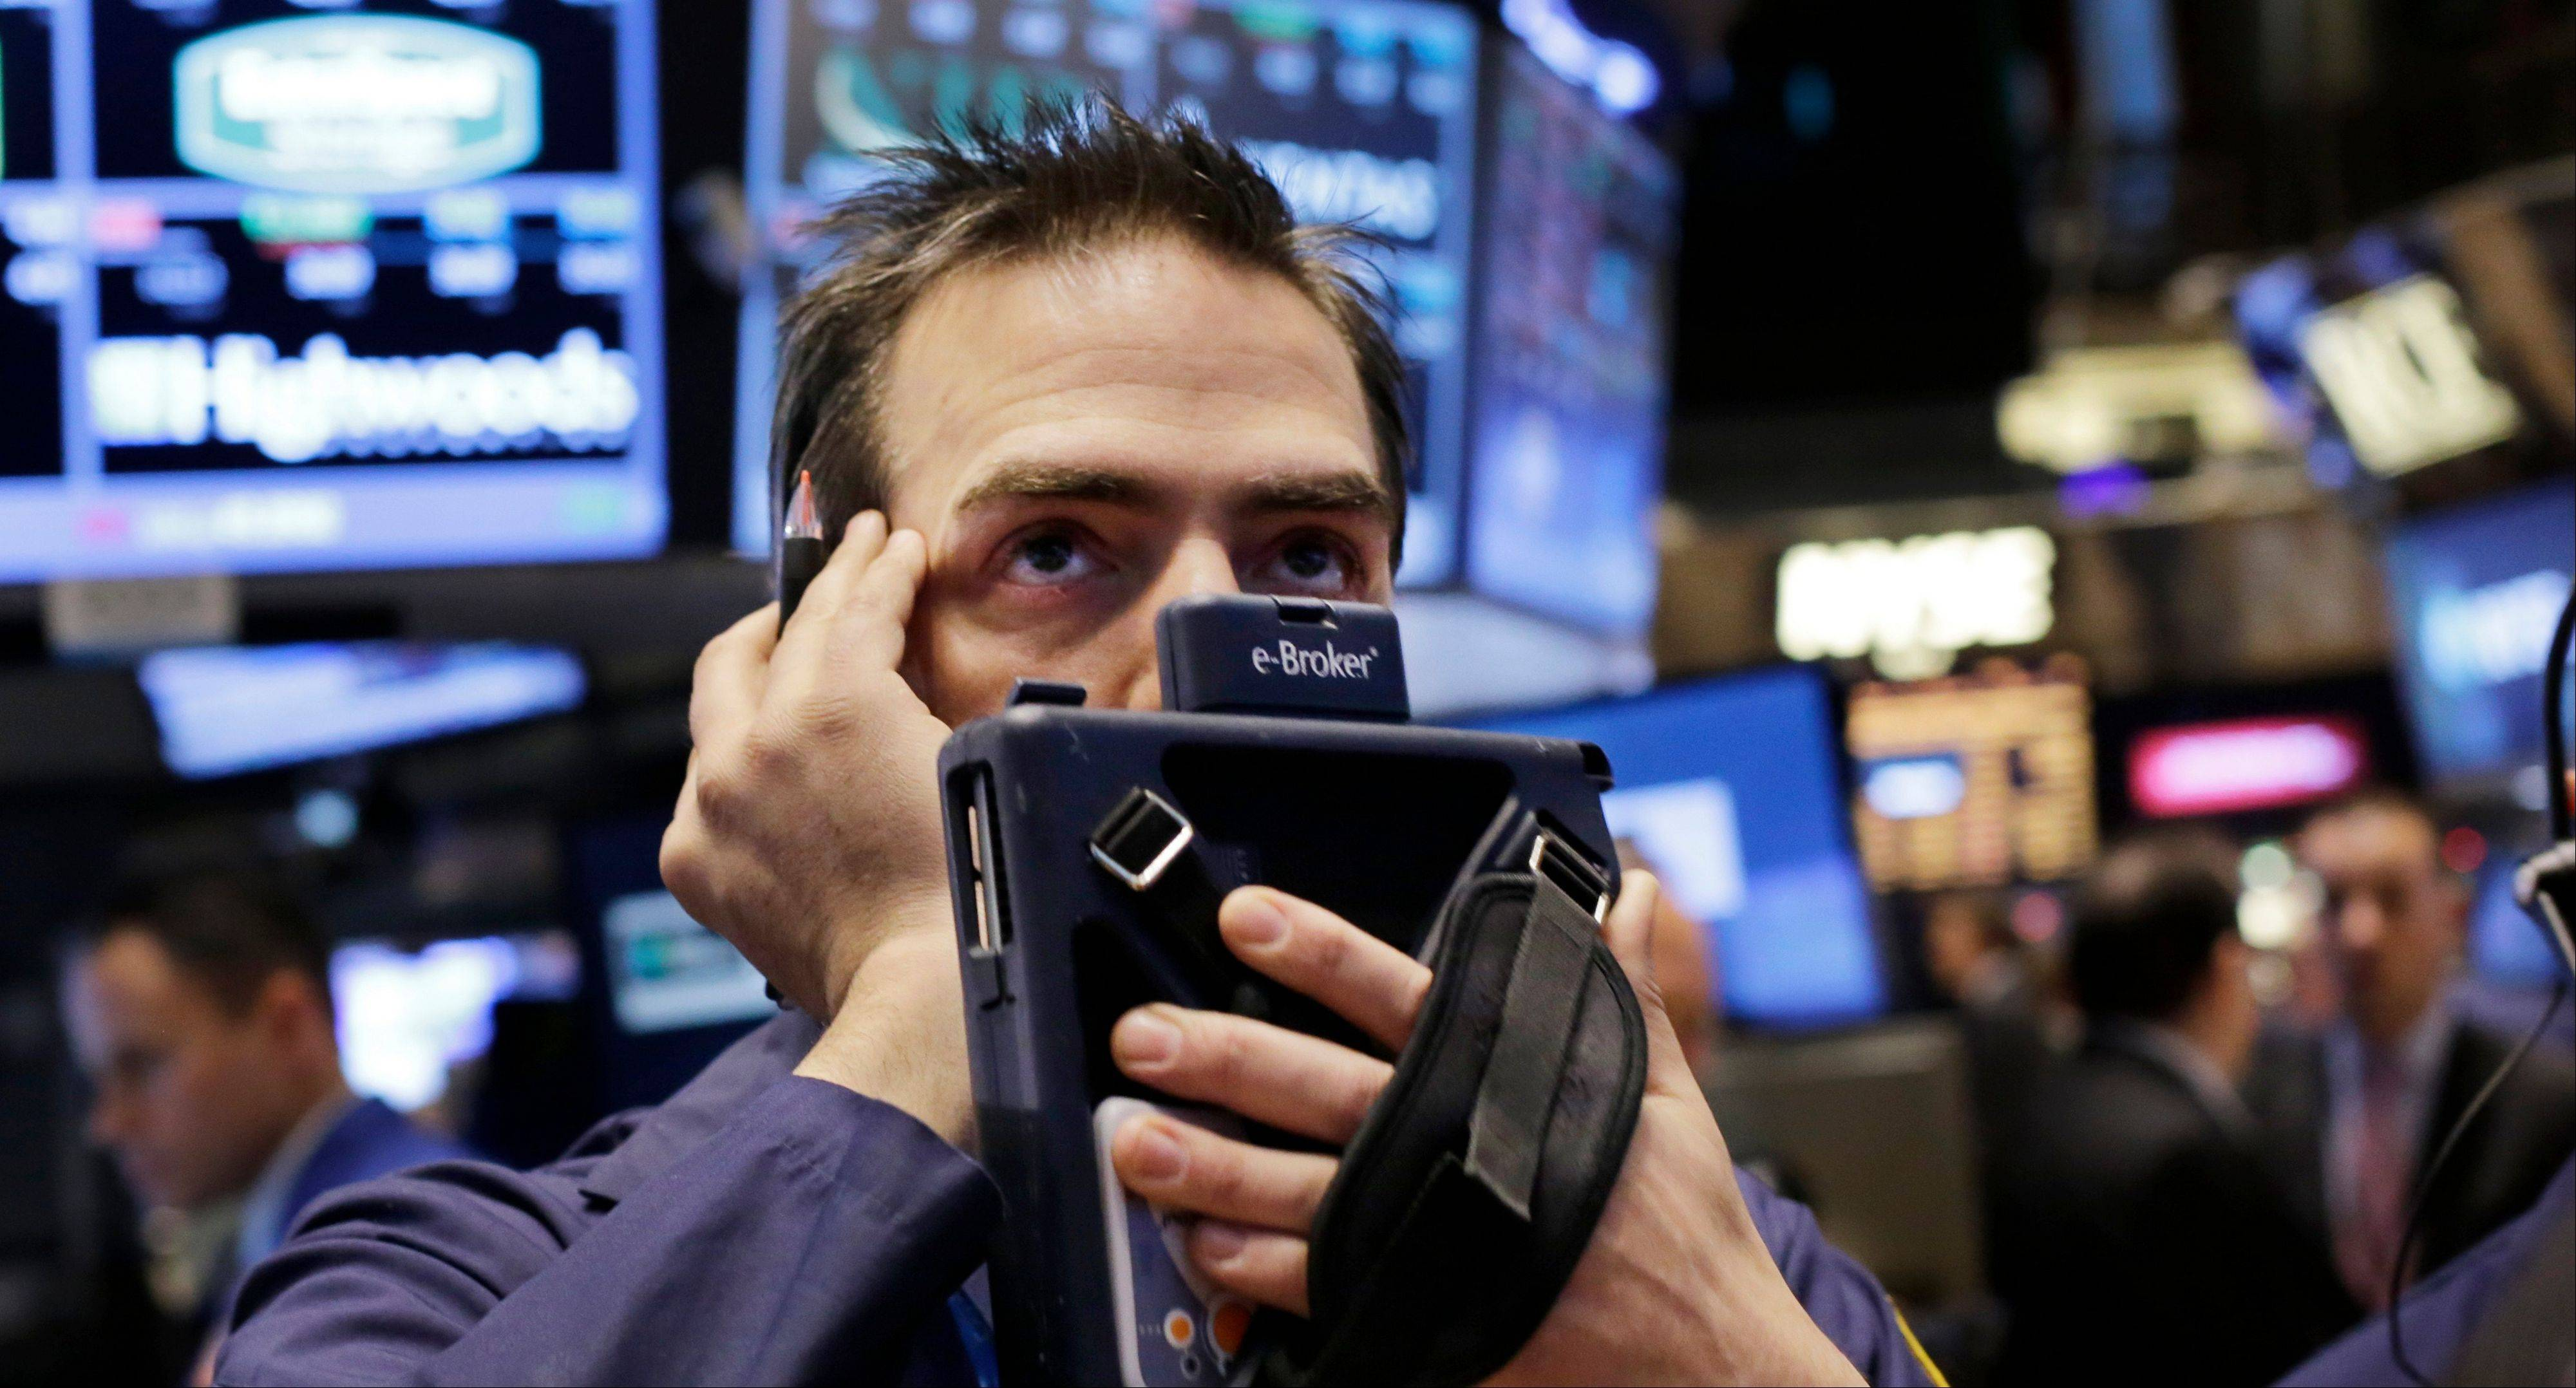 Stocks declined Thursday, with the Standard & Poor�s 500 Index starting the year lower for the first time since 2008, after benchmark indexes posted the biggest annual rallies in more than 15 years.